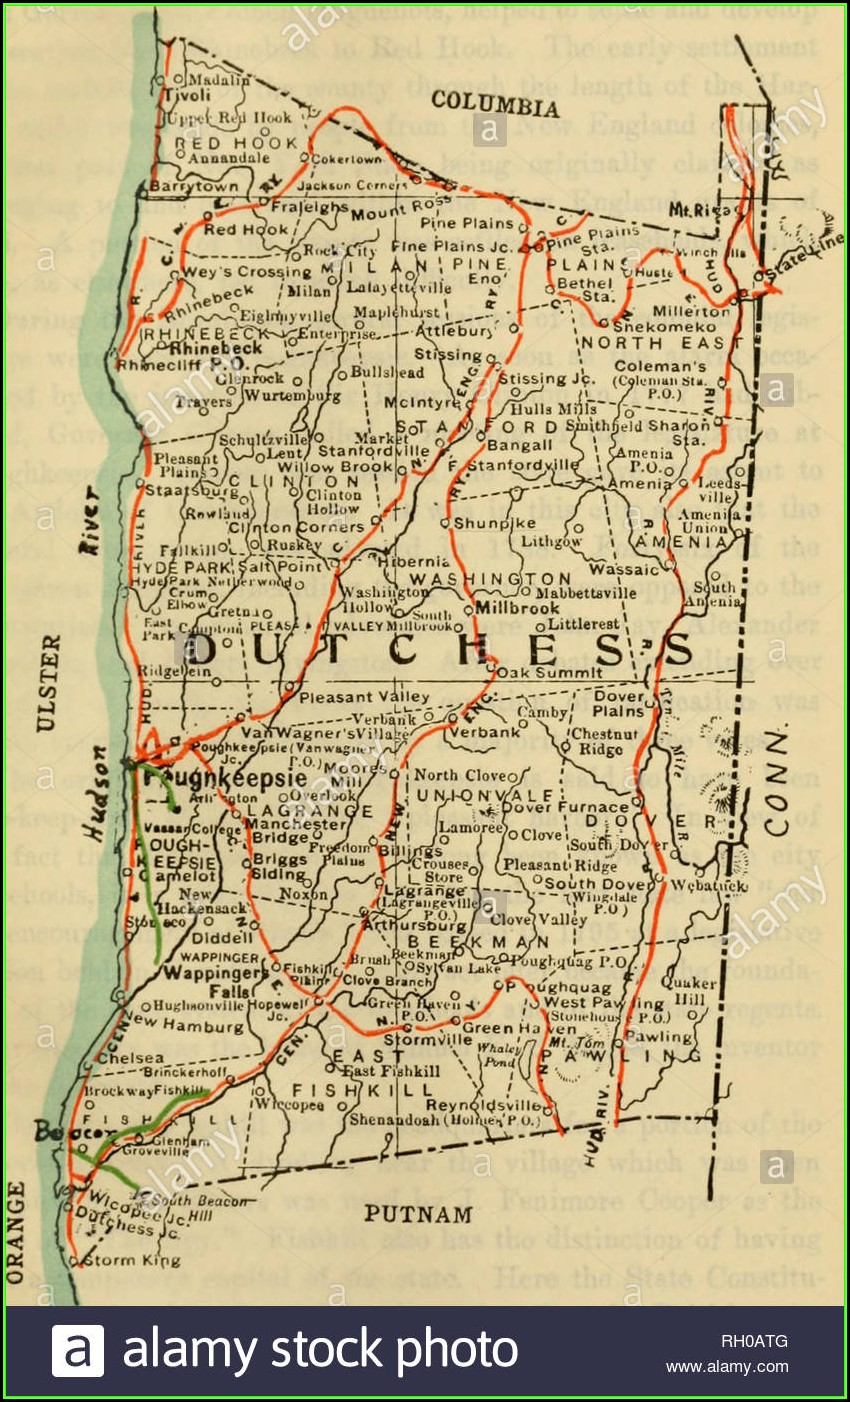 Road Map Of Dutchess County New York